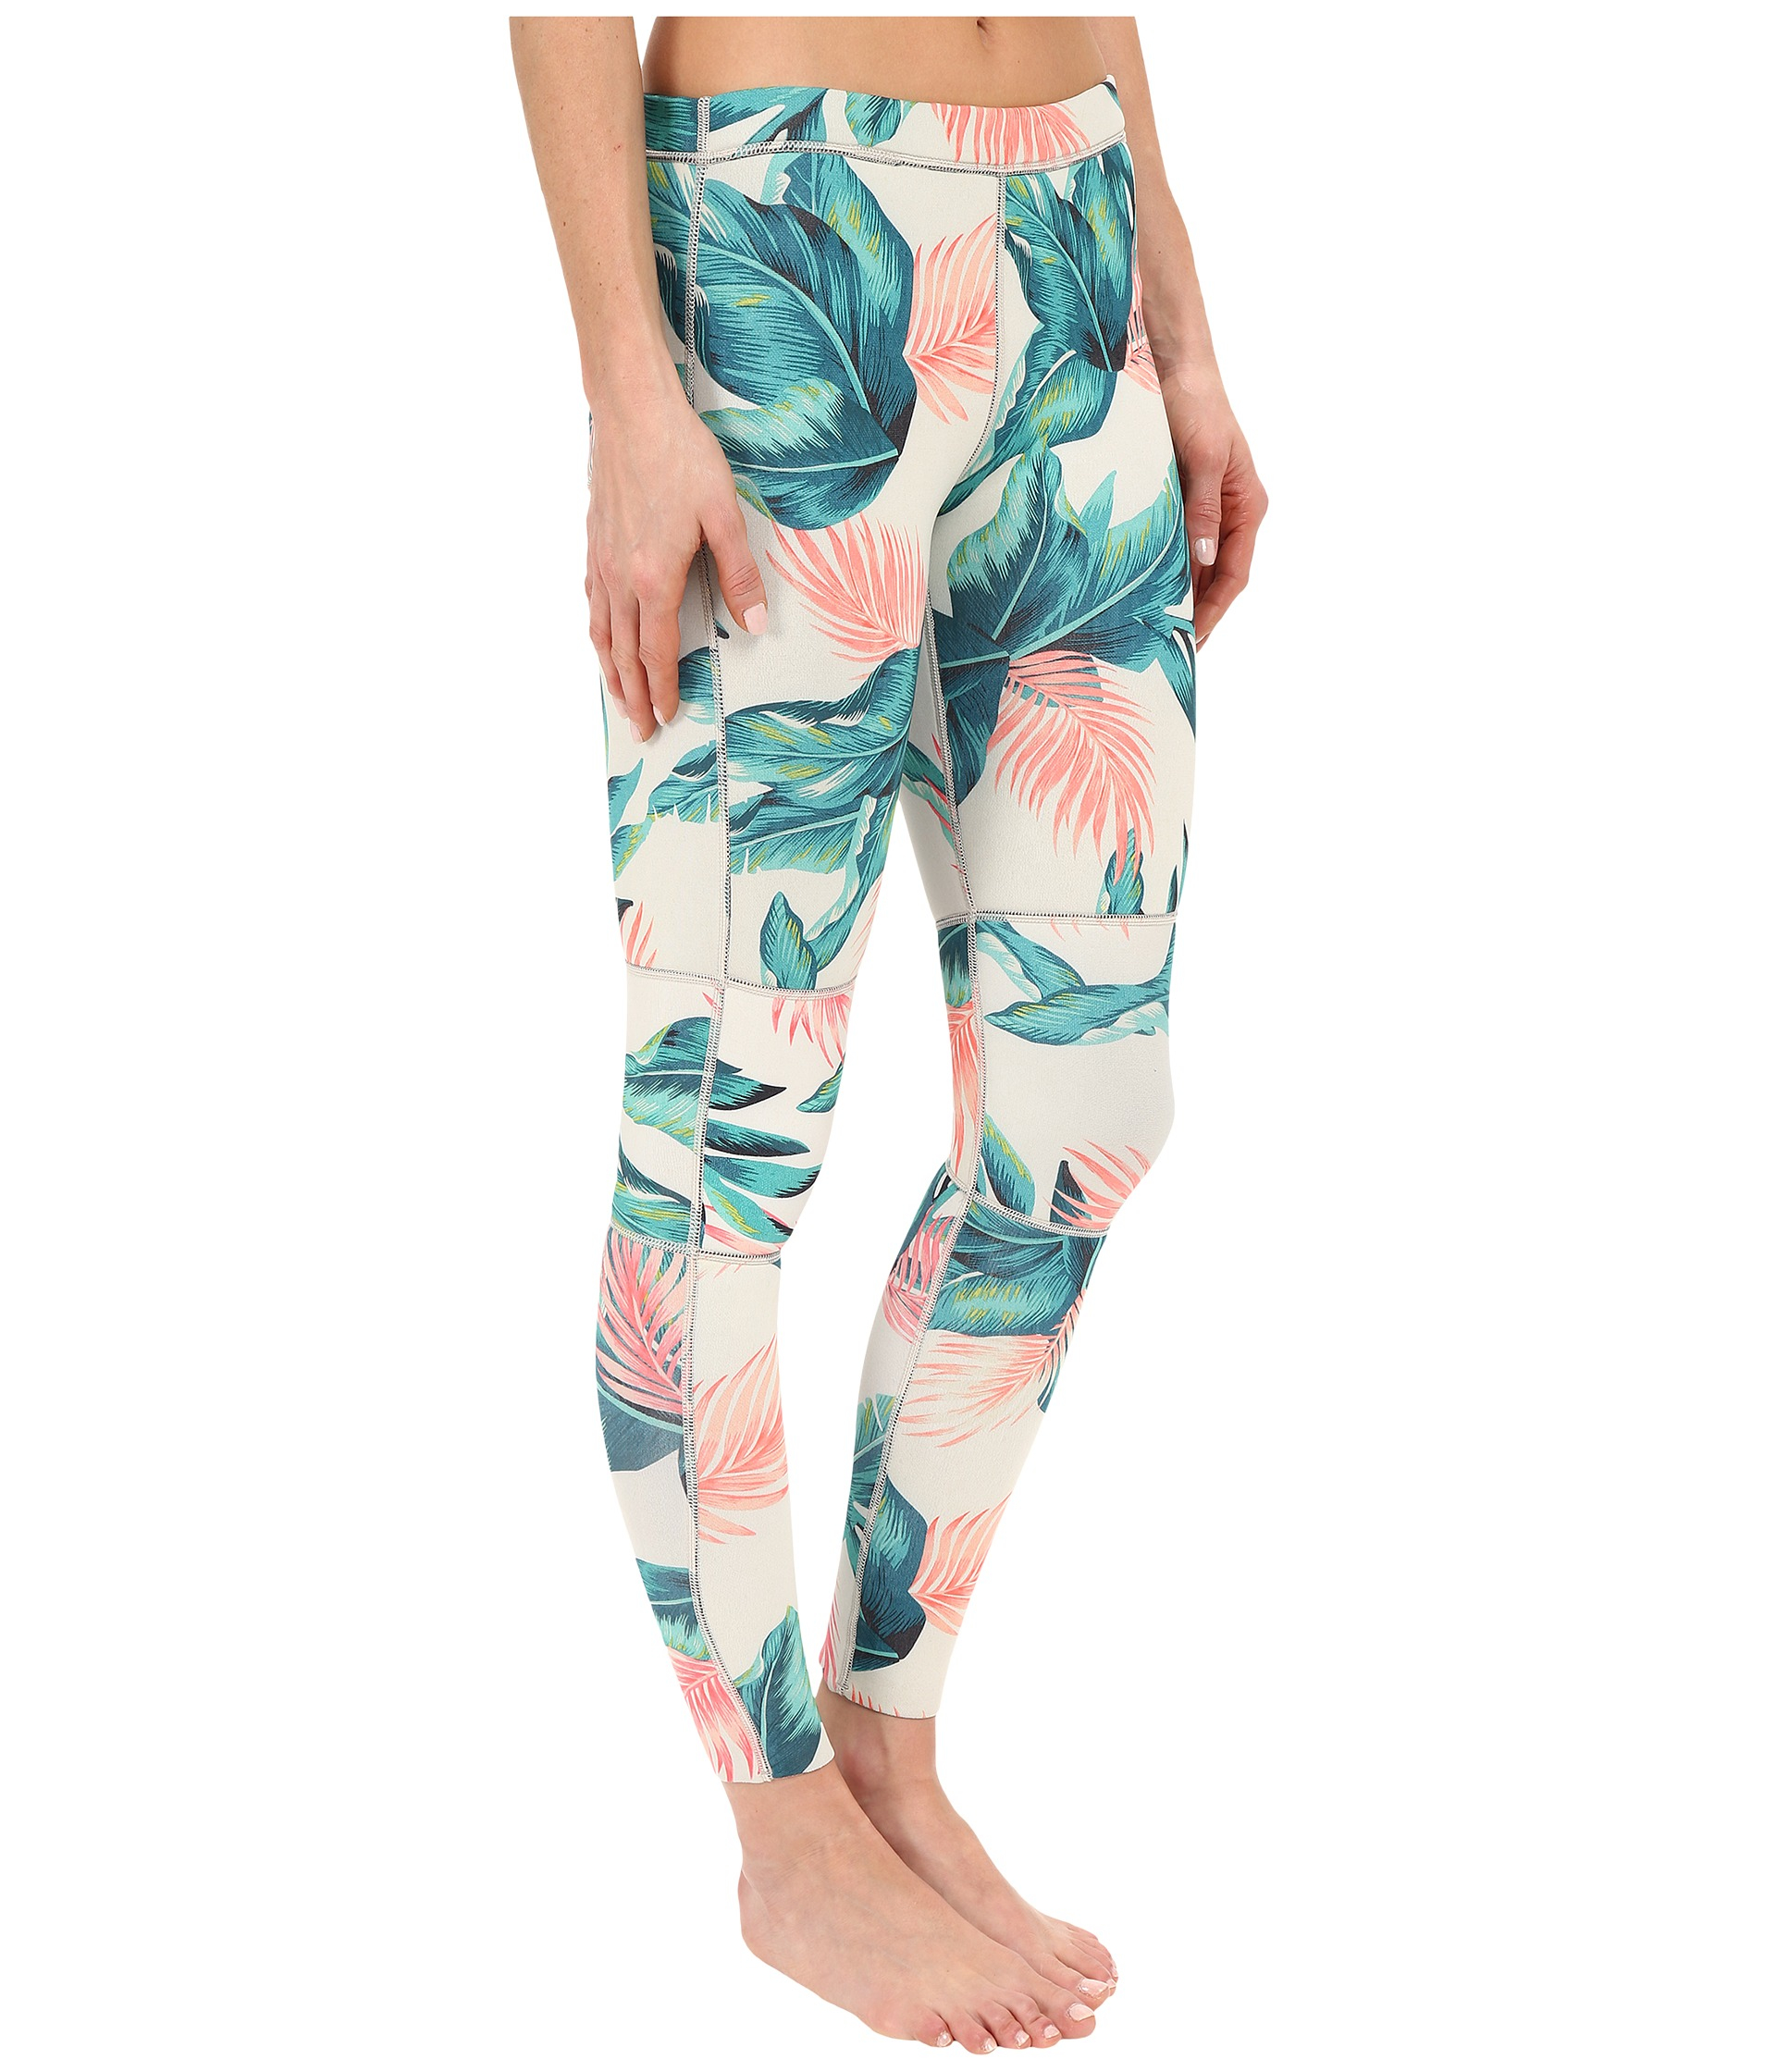 e9d1bd4ba1459 Billabong Skinny Sea Legs Surf Leggings - Lyst